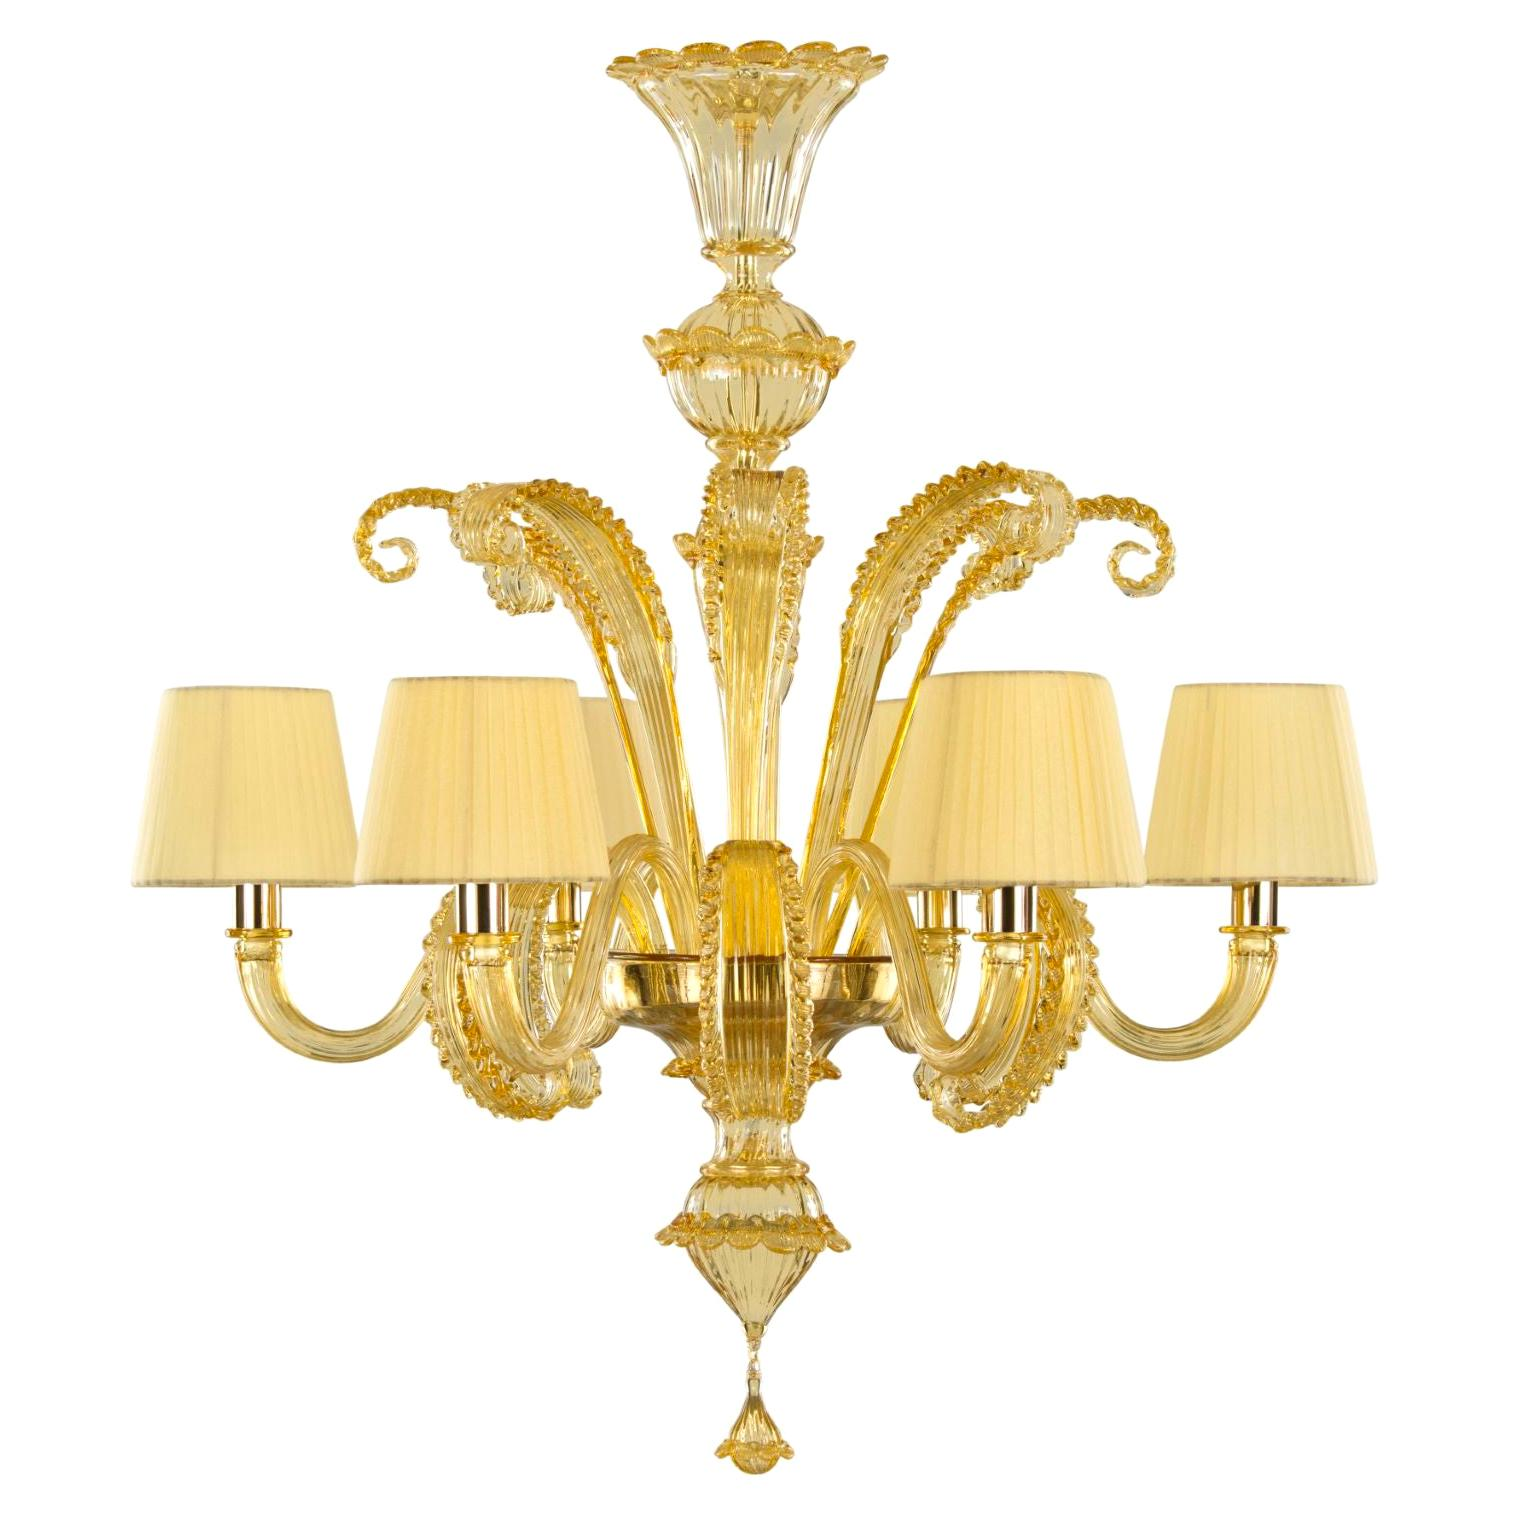 Venetian Chandelier 6 Arms, Murano Amber Glass, Amber Details by Multiforme